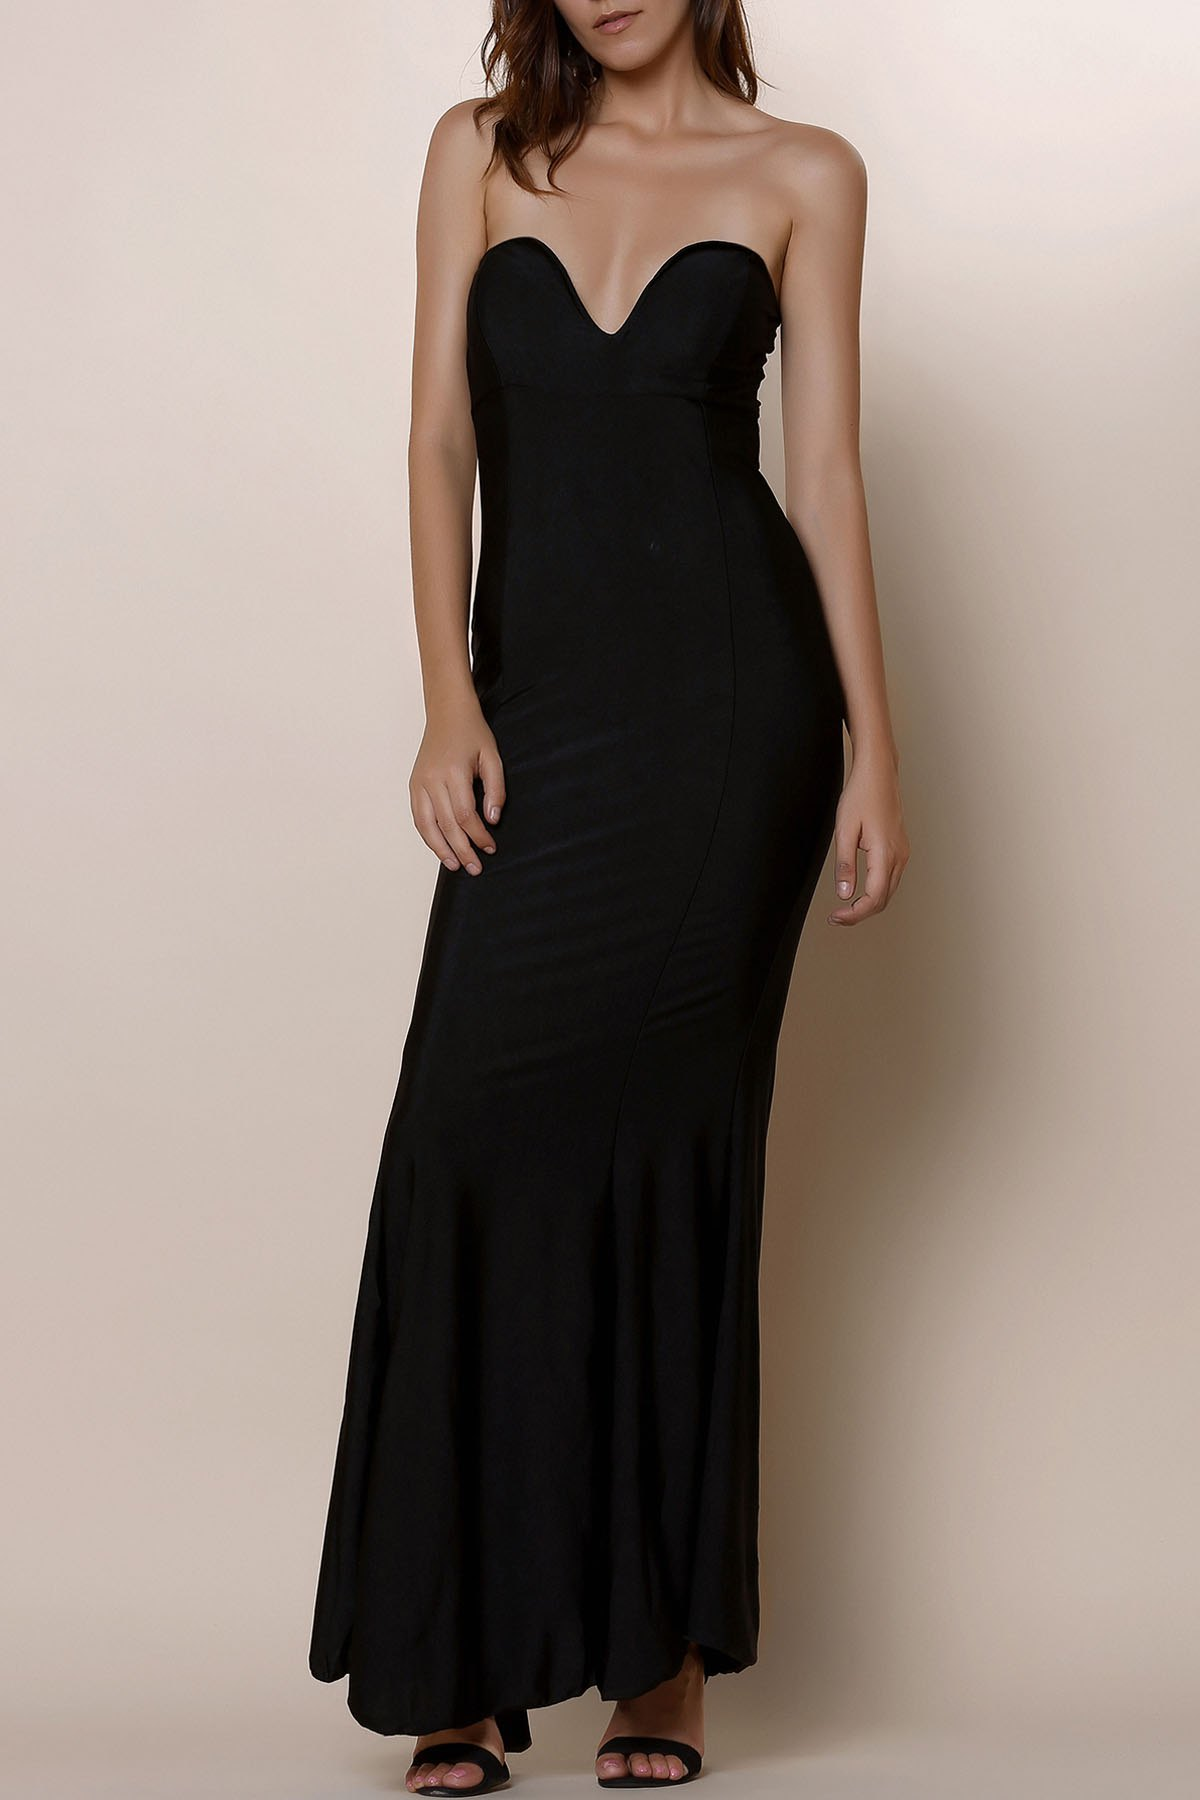 Image of Noble Strapless Solid Color Bodycon Maxi Fishtail Dress For Women